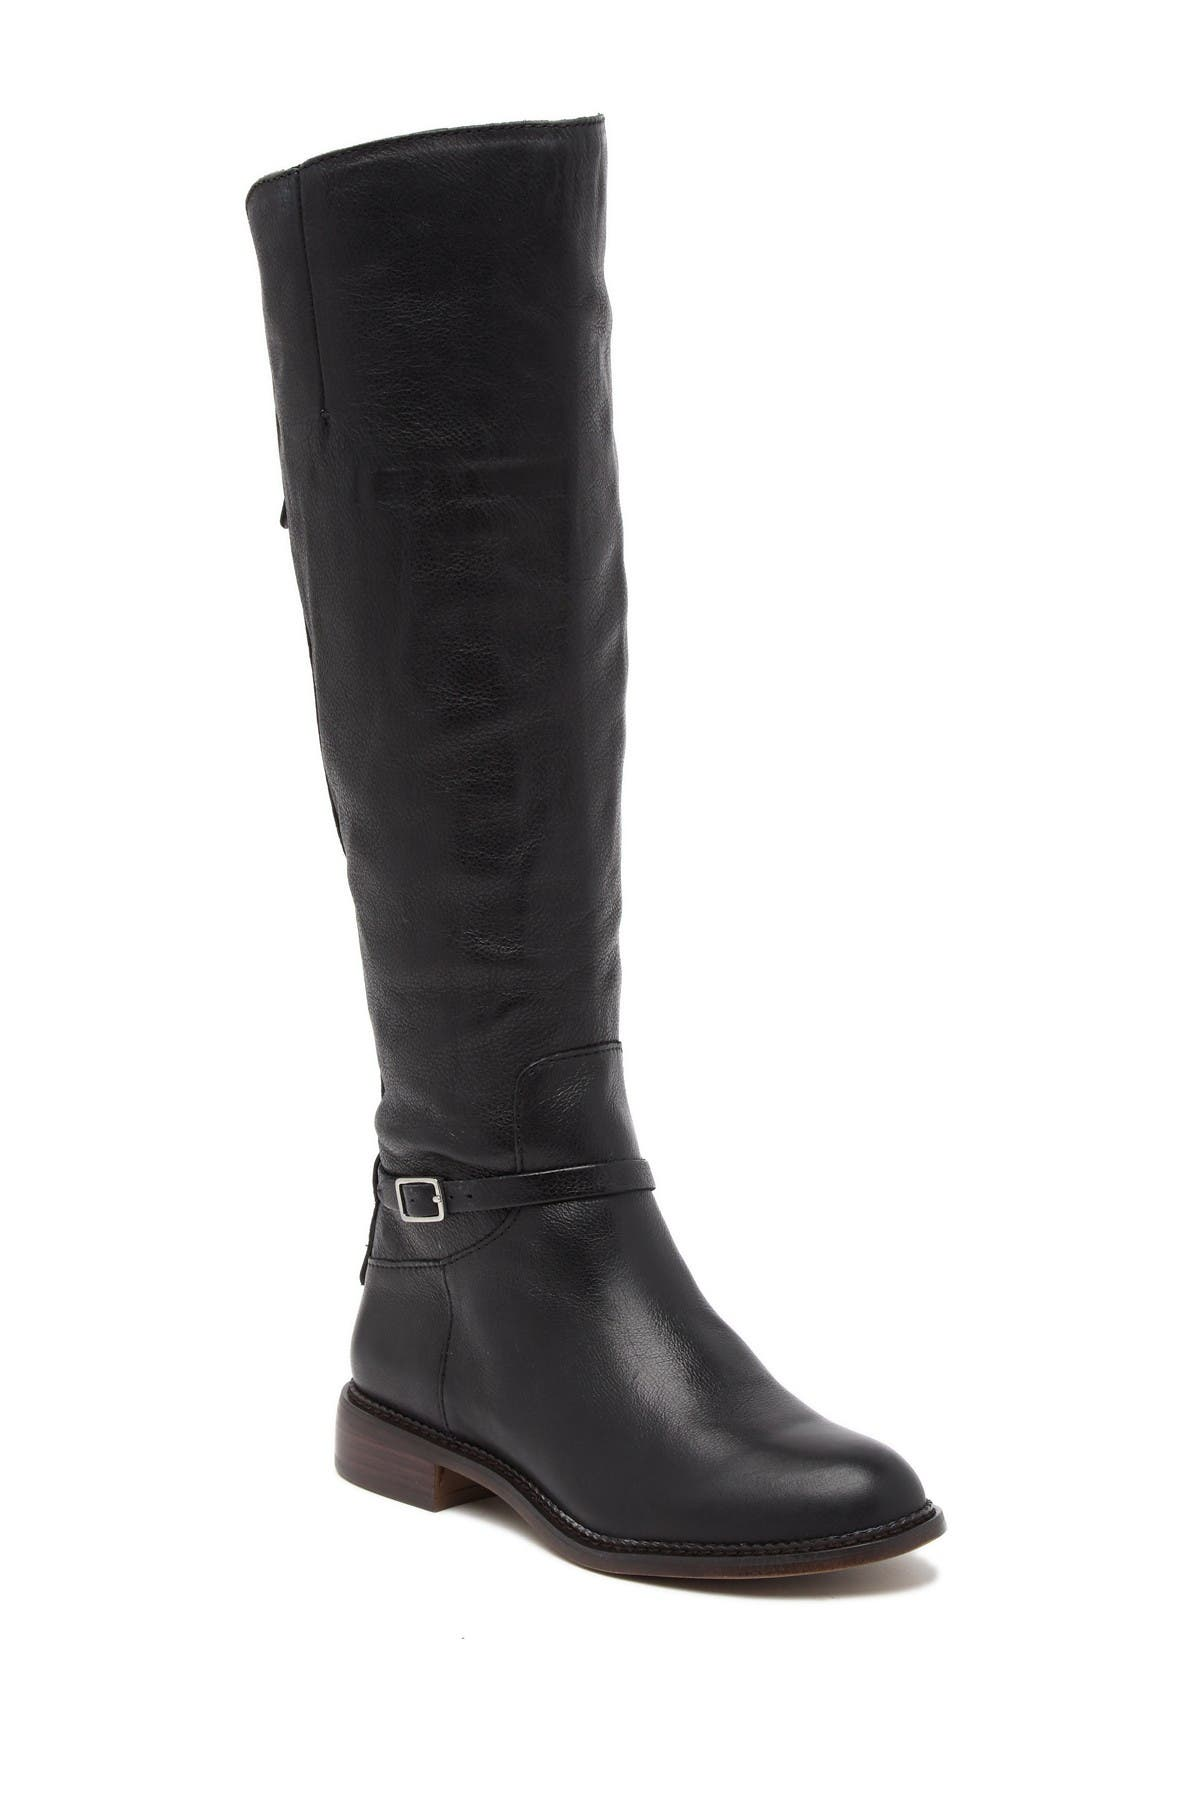 Image of Franco Sarto Haylie Leather Knee High Boot